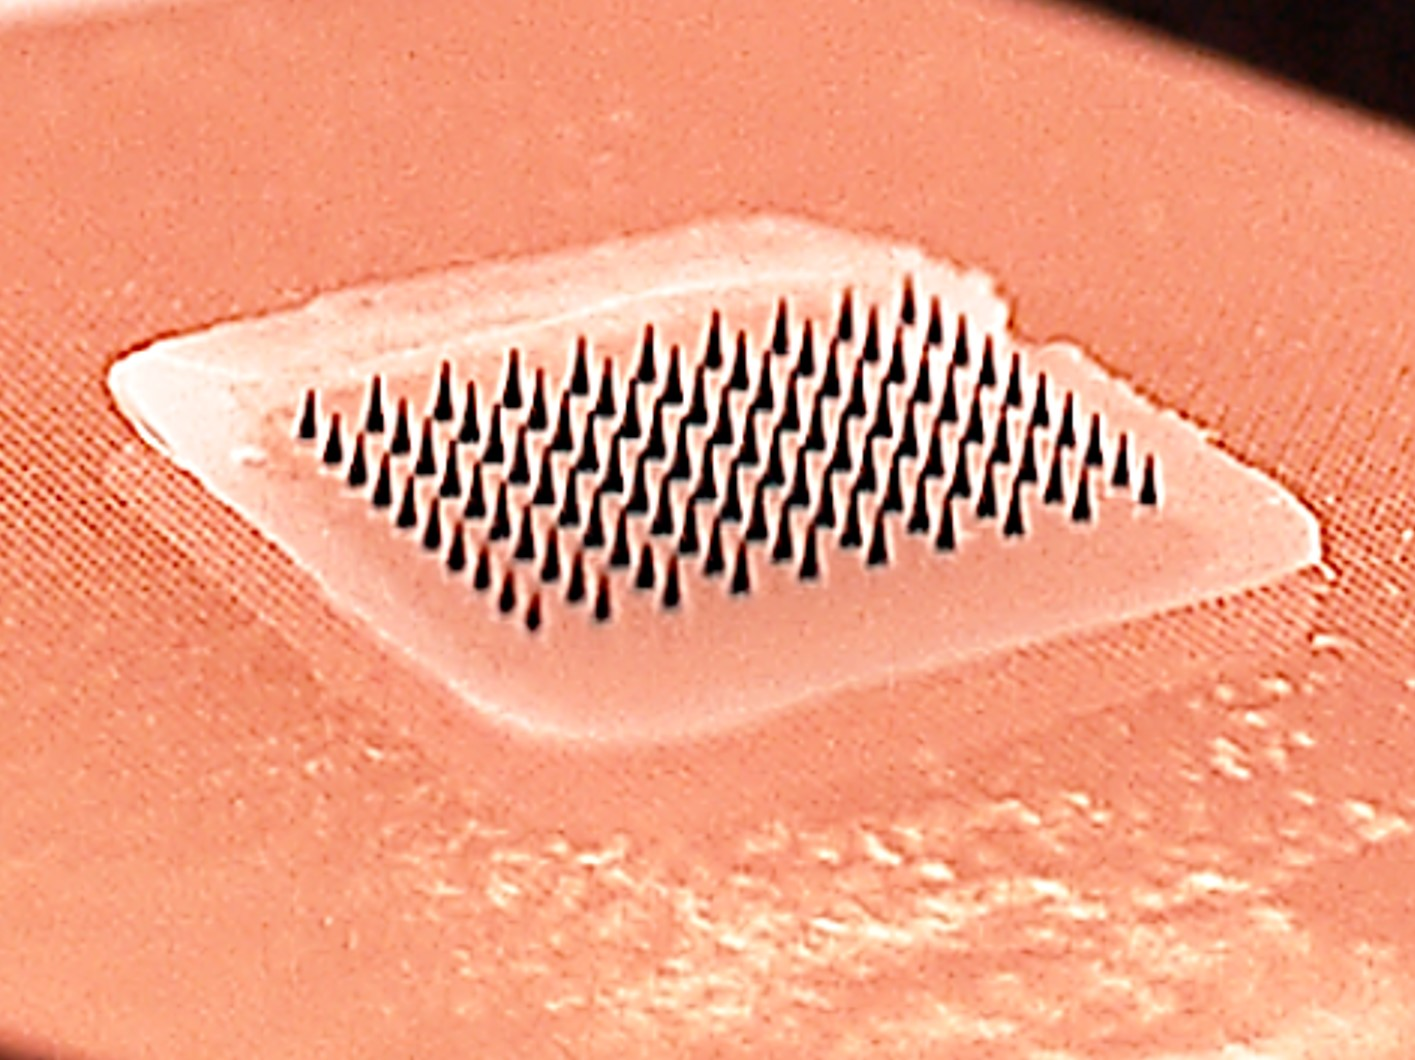 Microneedle patches deliver pain-free flu vaccine